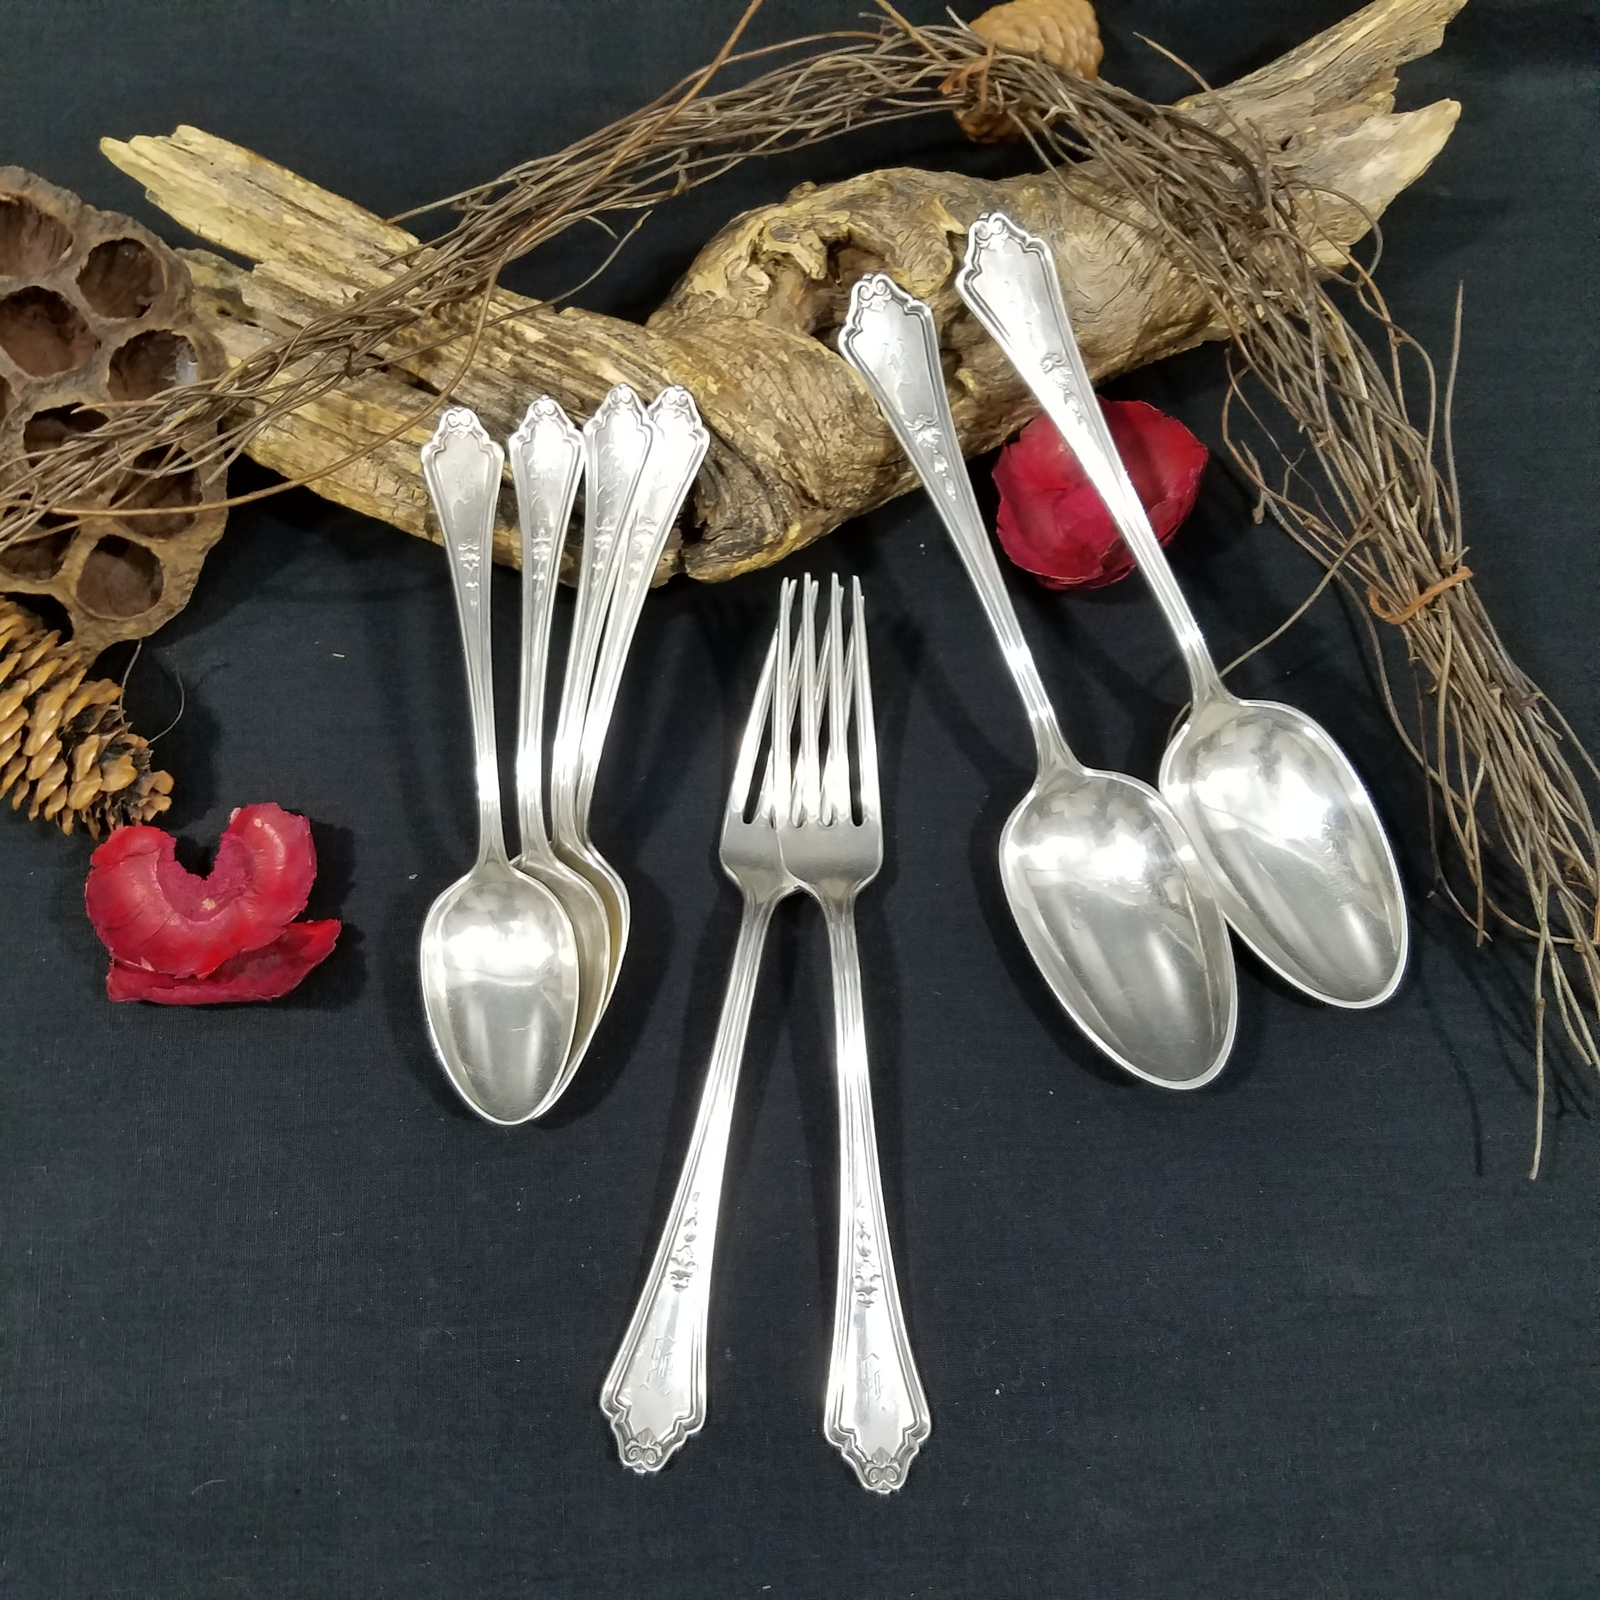 Primary image for 8 Pieces Assorted Flatware Gorham Silverplate Shelburne Pattern 1914